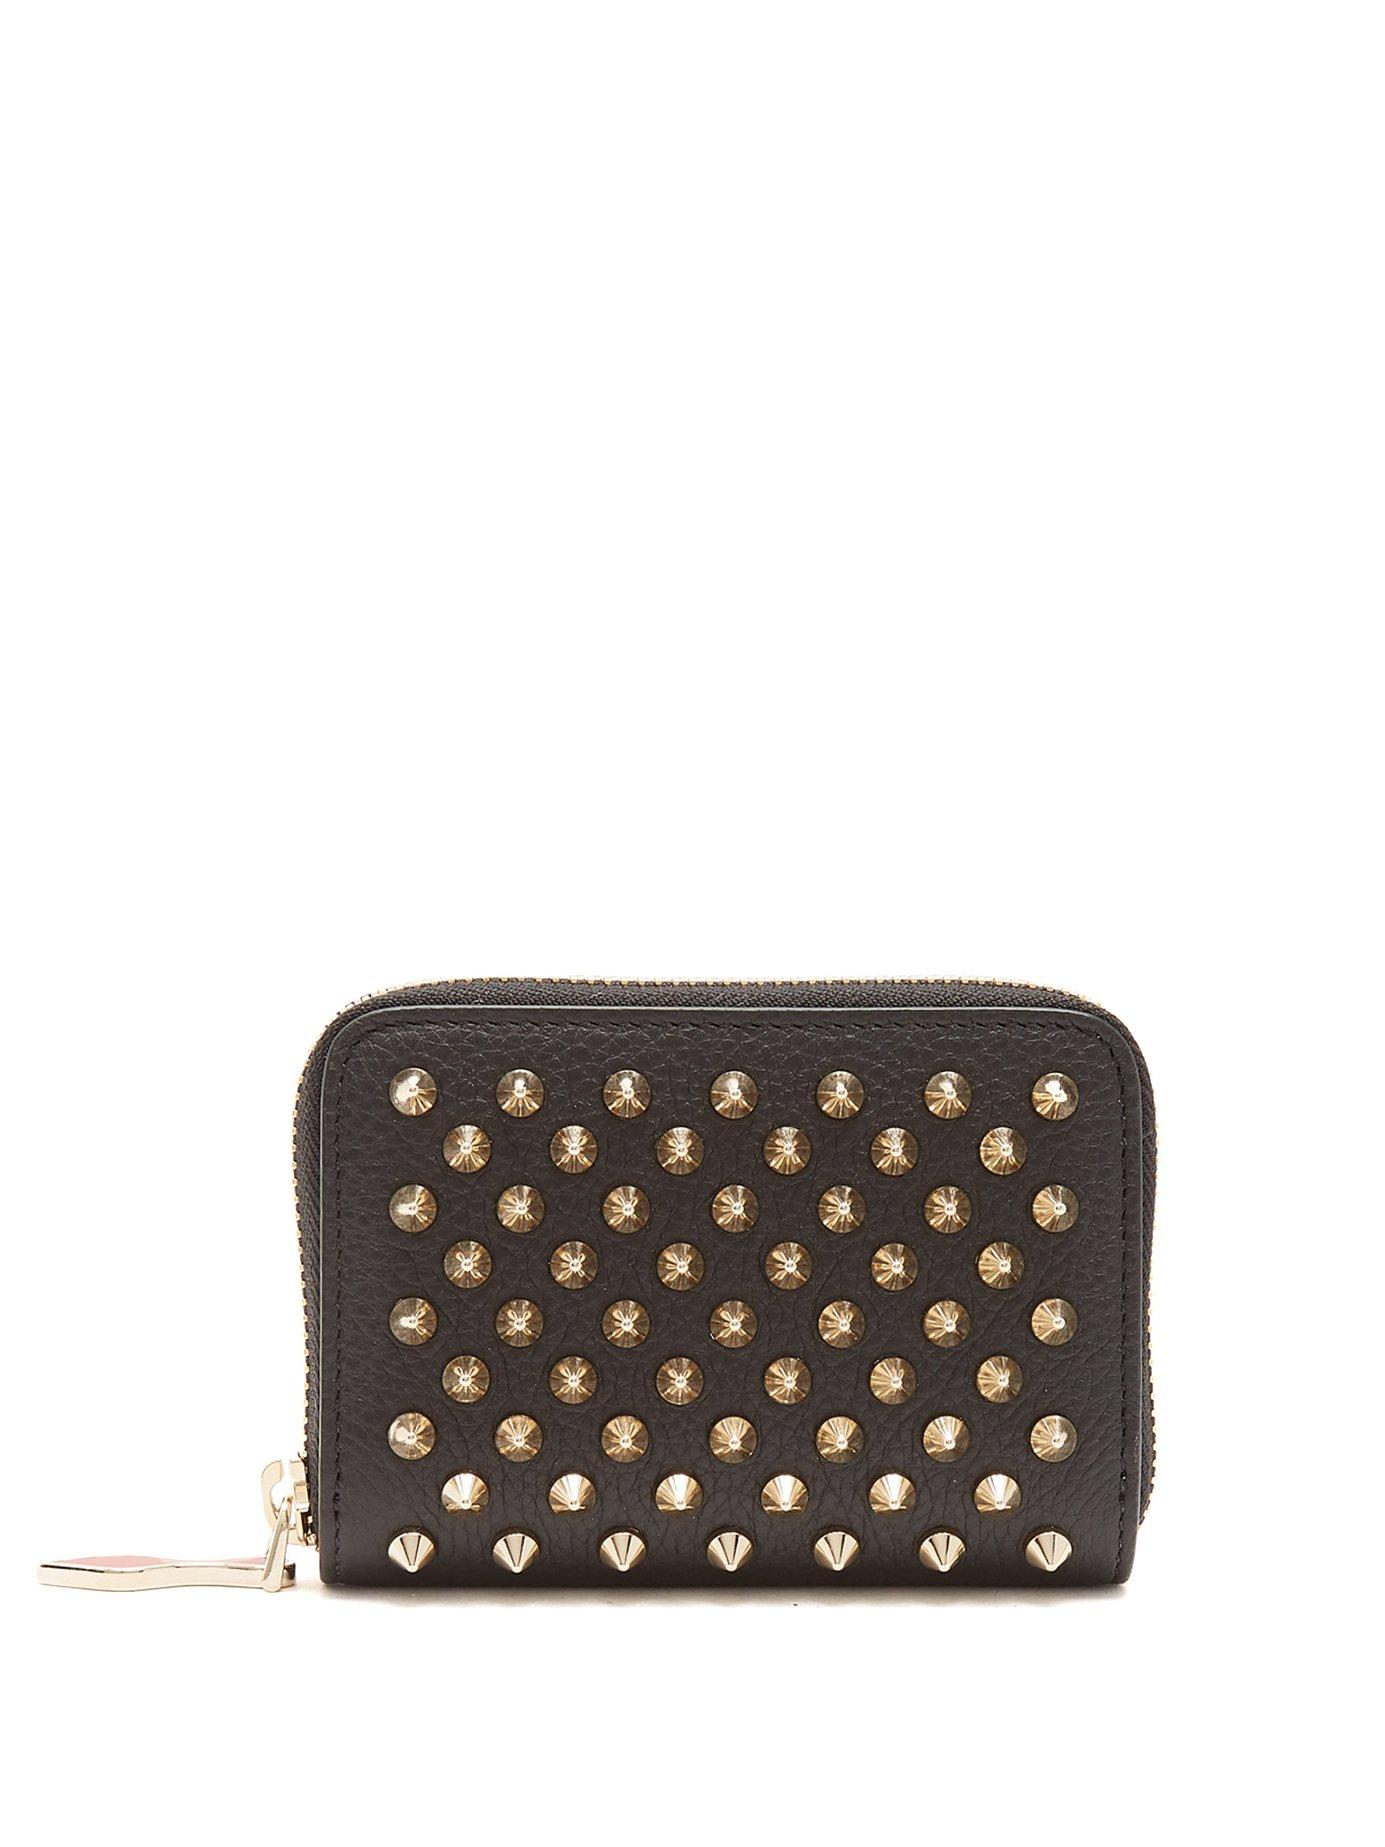 728d684be04 Panettone Spike-Embellished Leather Coin Purse in Black